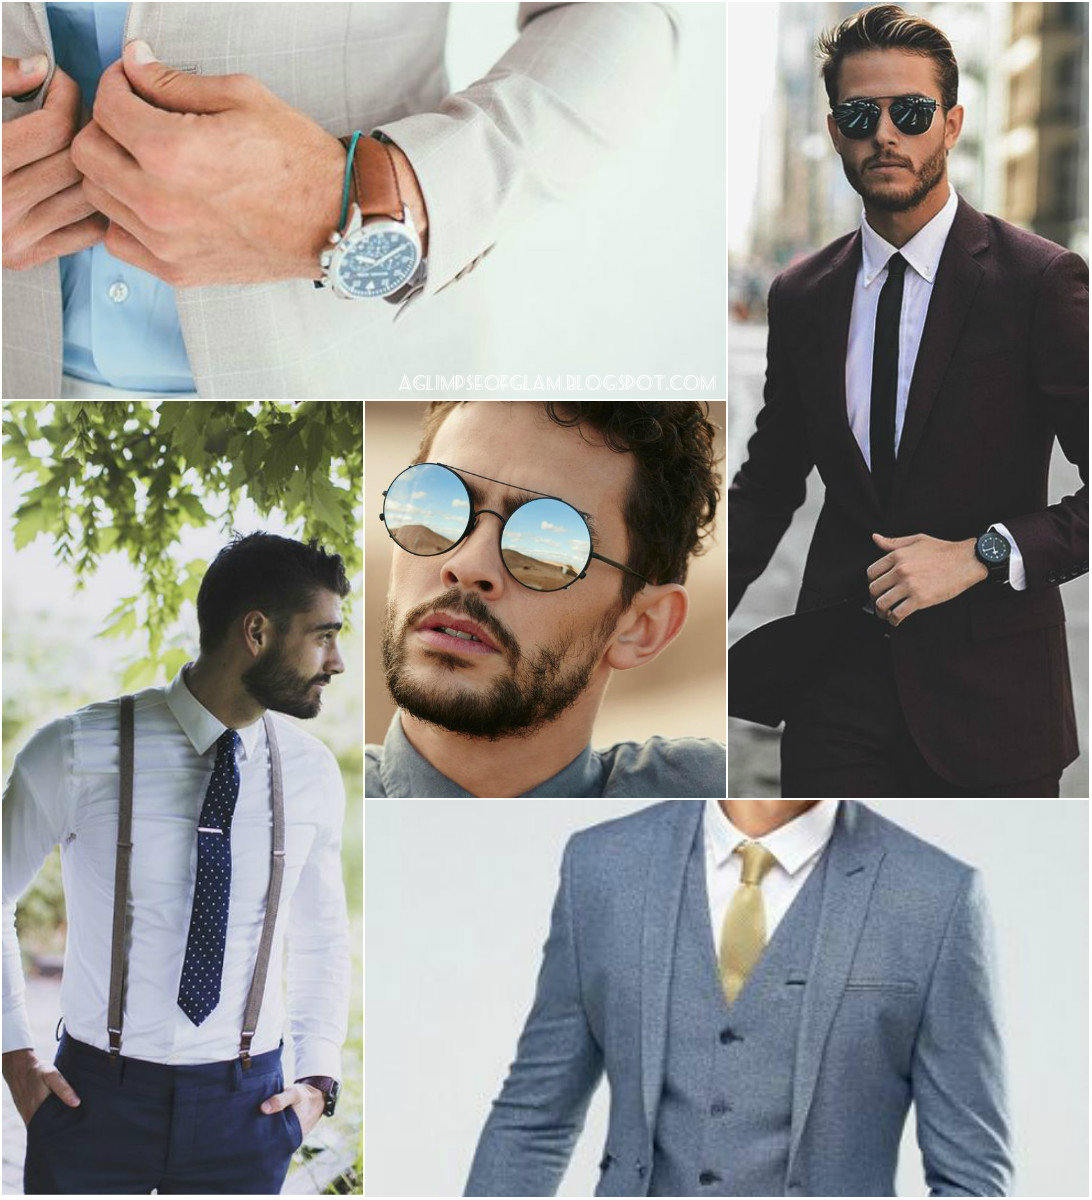 A Glimpse of Glam, Style Inspiration, Summer Events, Men's Style, Suits, Ties, Sunglasses, Accessories, Prints, Dressing Up, Suspenders - Andrea Tiffany